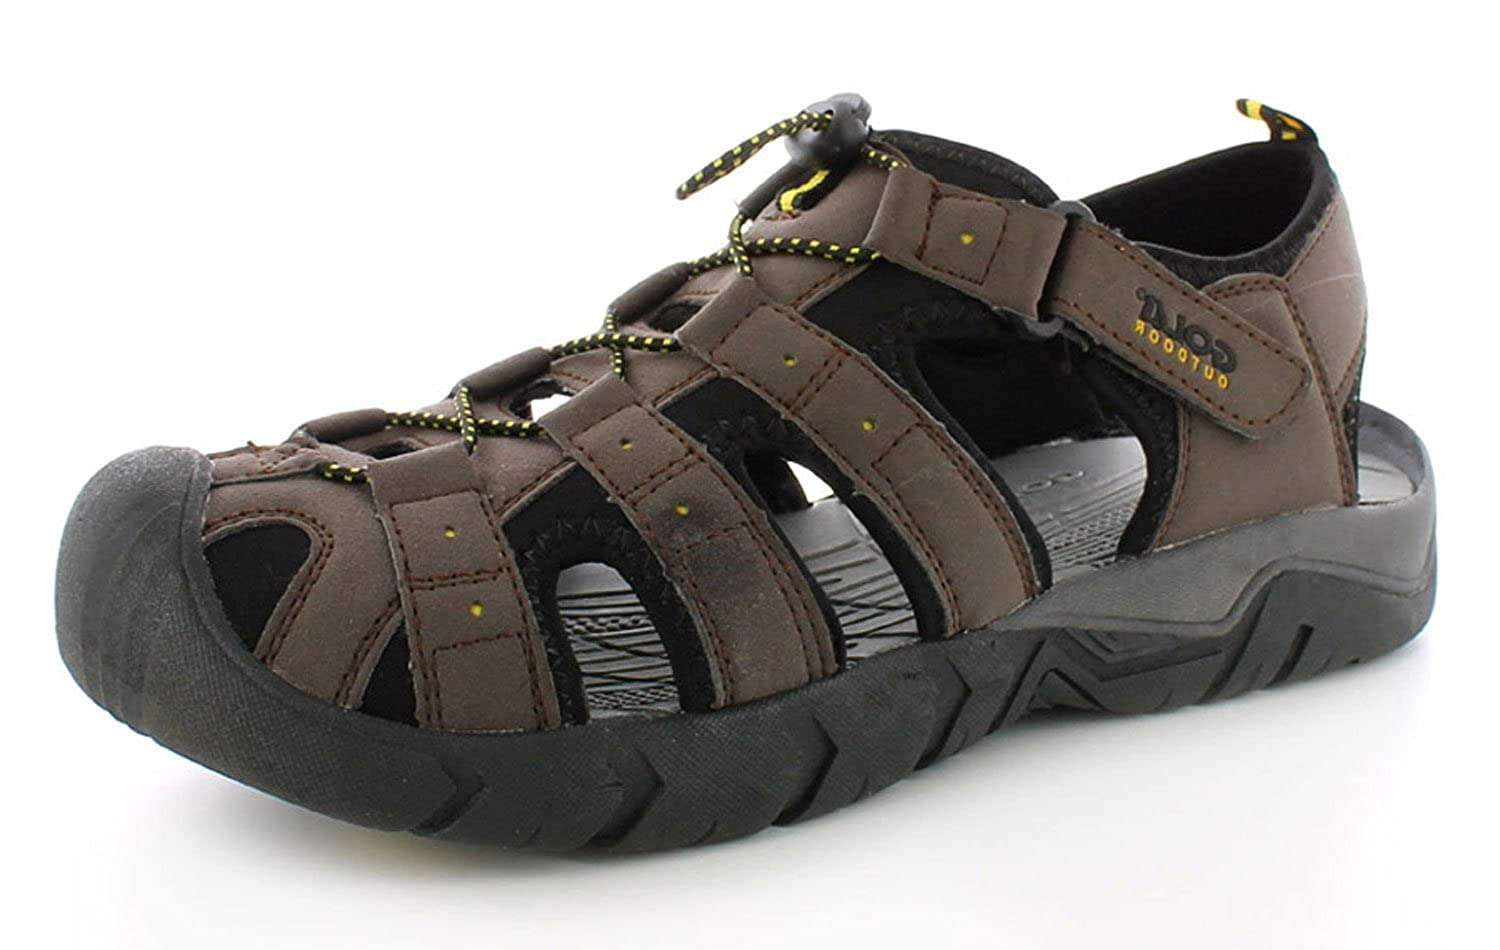 958f39e1613b Gola New Mens Gents Dark Brown Closed Toe Walking Sandals. - Dark  Brown Black Sun - UK SIZE 6  Amazon.co.uk  Shoes   Bags